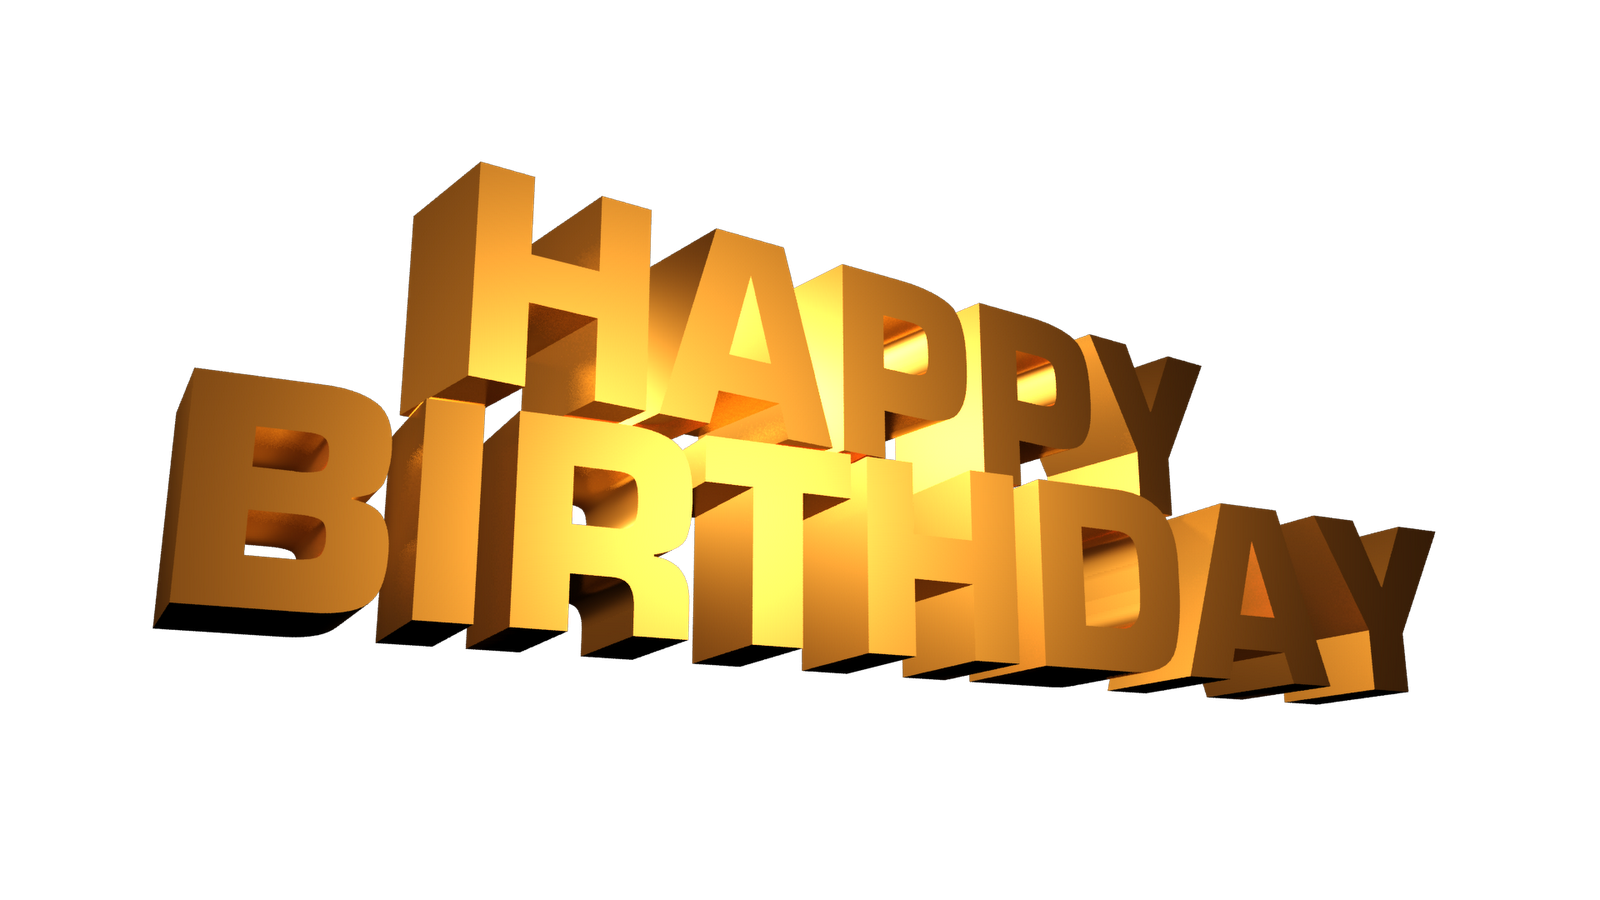 Happy birthday text png. Images free download